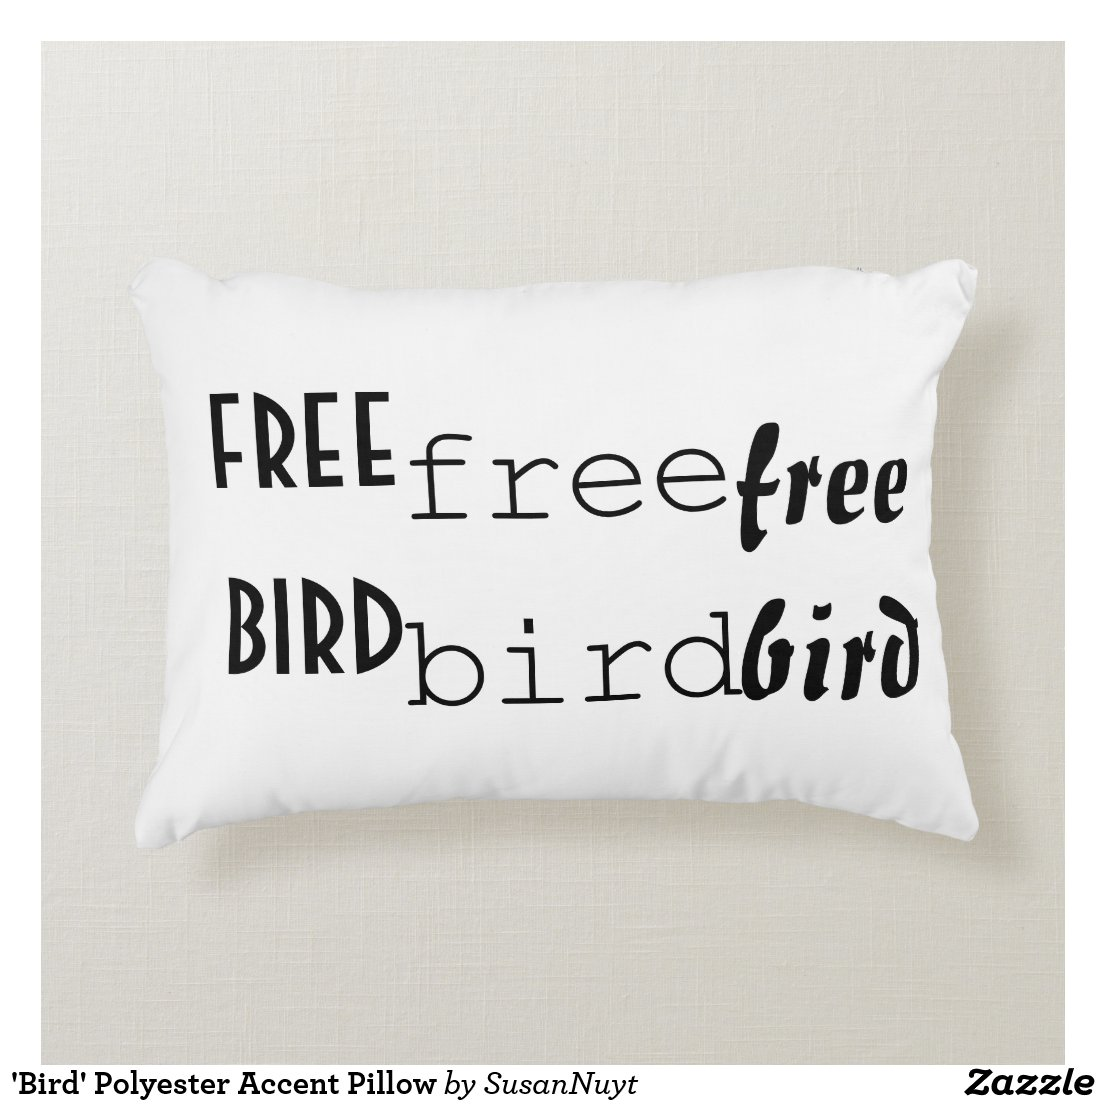 'Bird' Polyester Accent Pillow